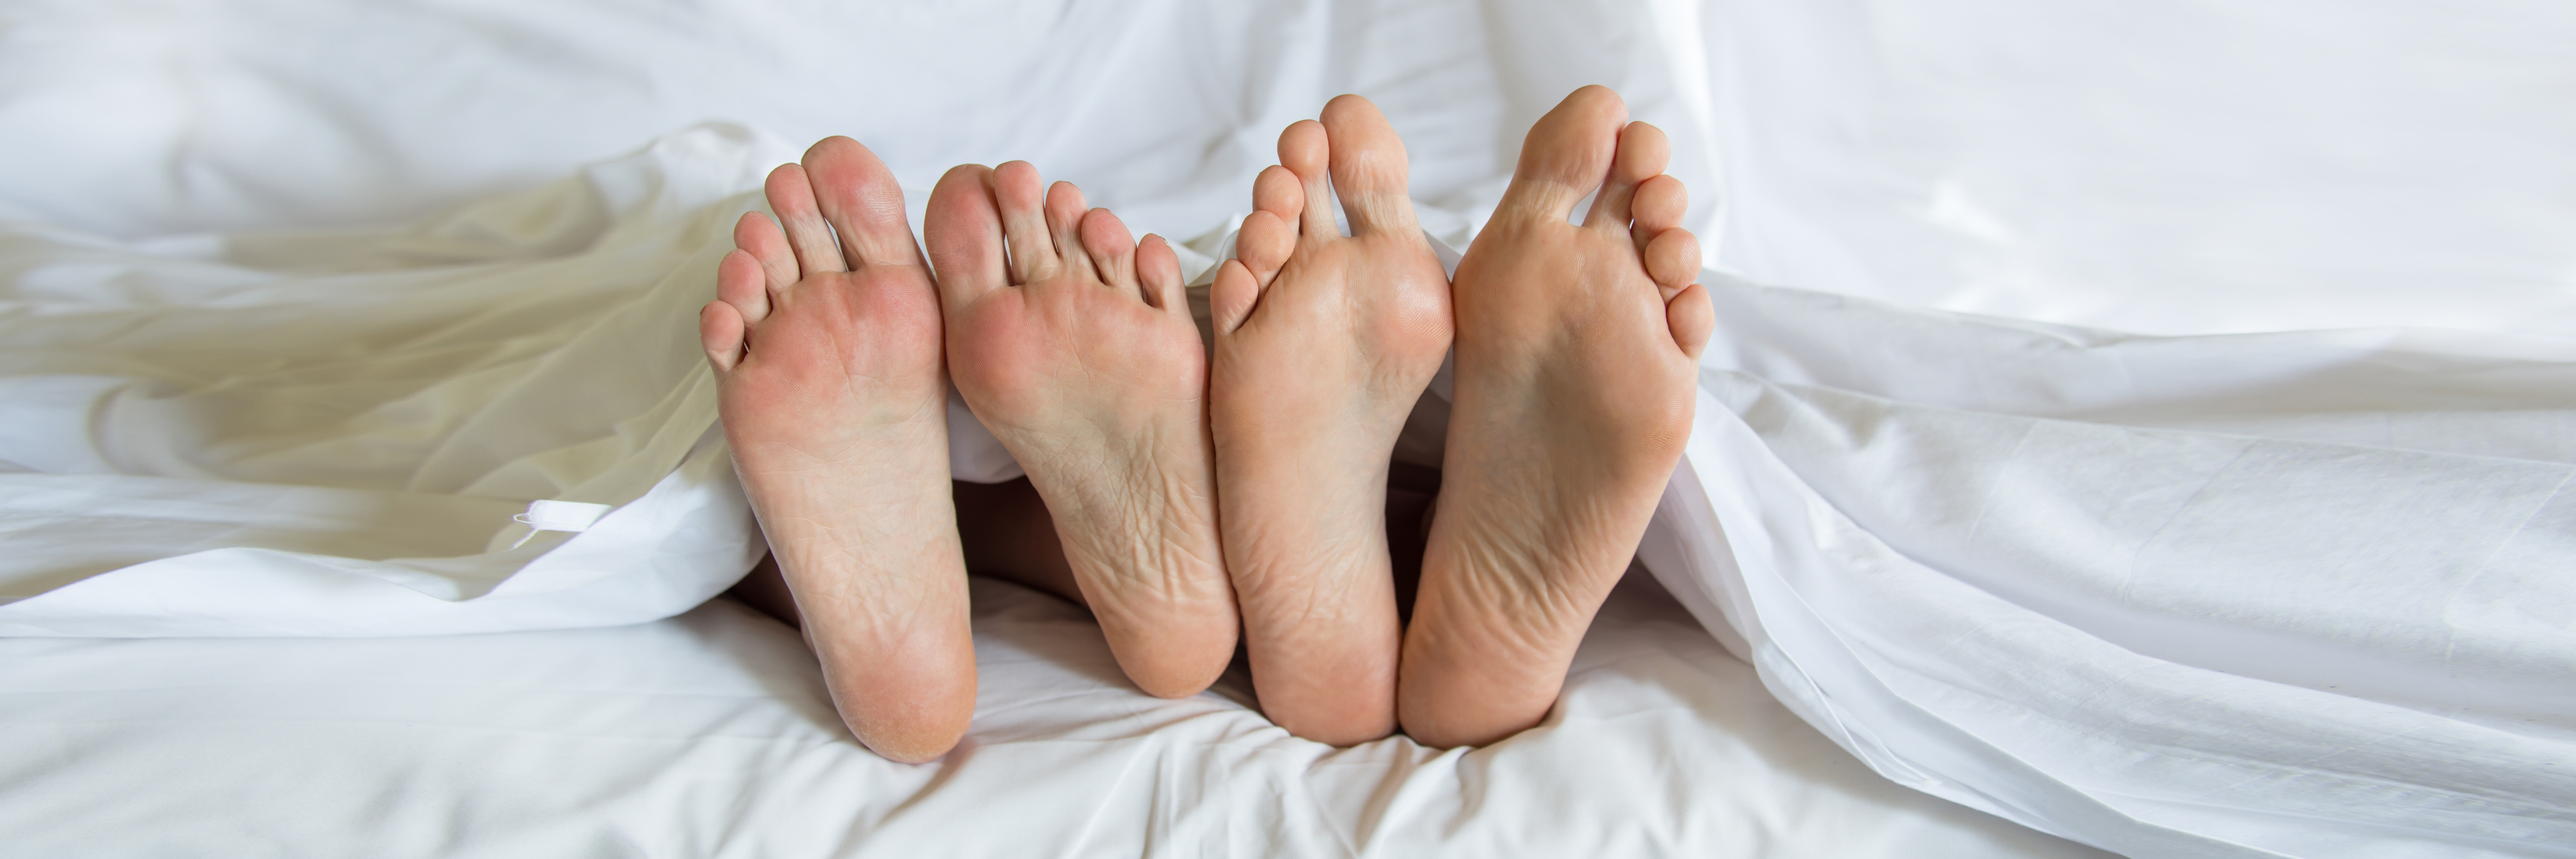 Two sets of feet in bed with white sheets